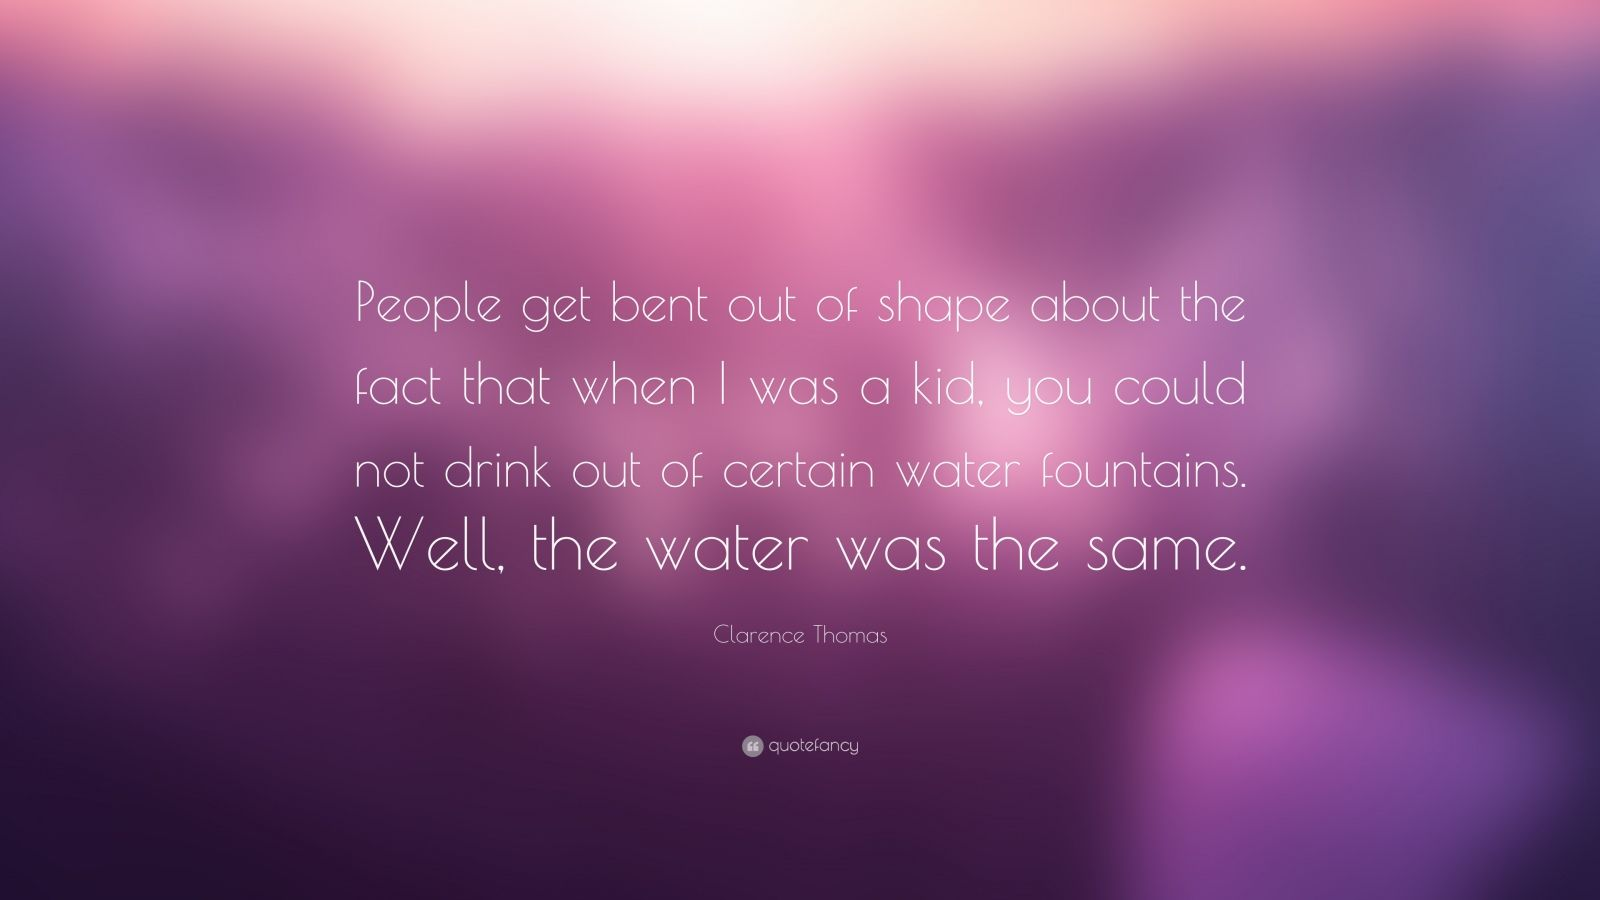 Calendar Quotes From The Shape Of Water : Clarence thomas quotes wallpapers quotefancy